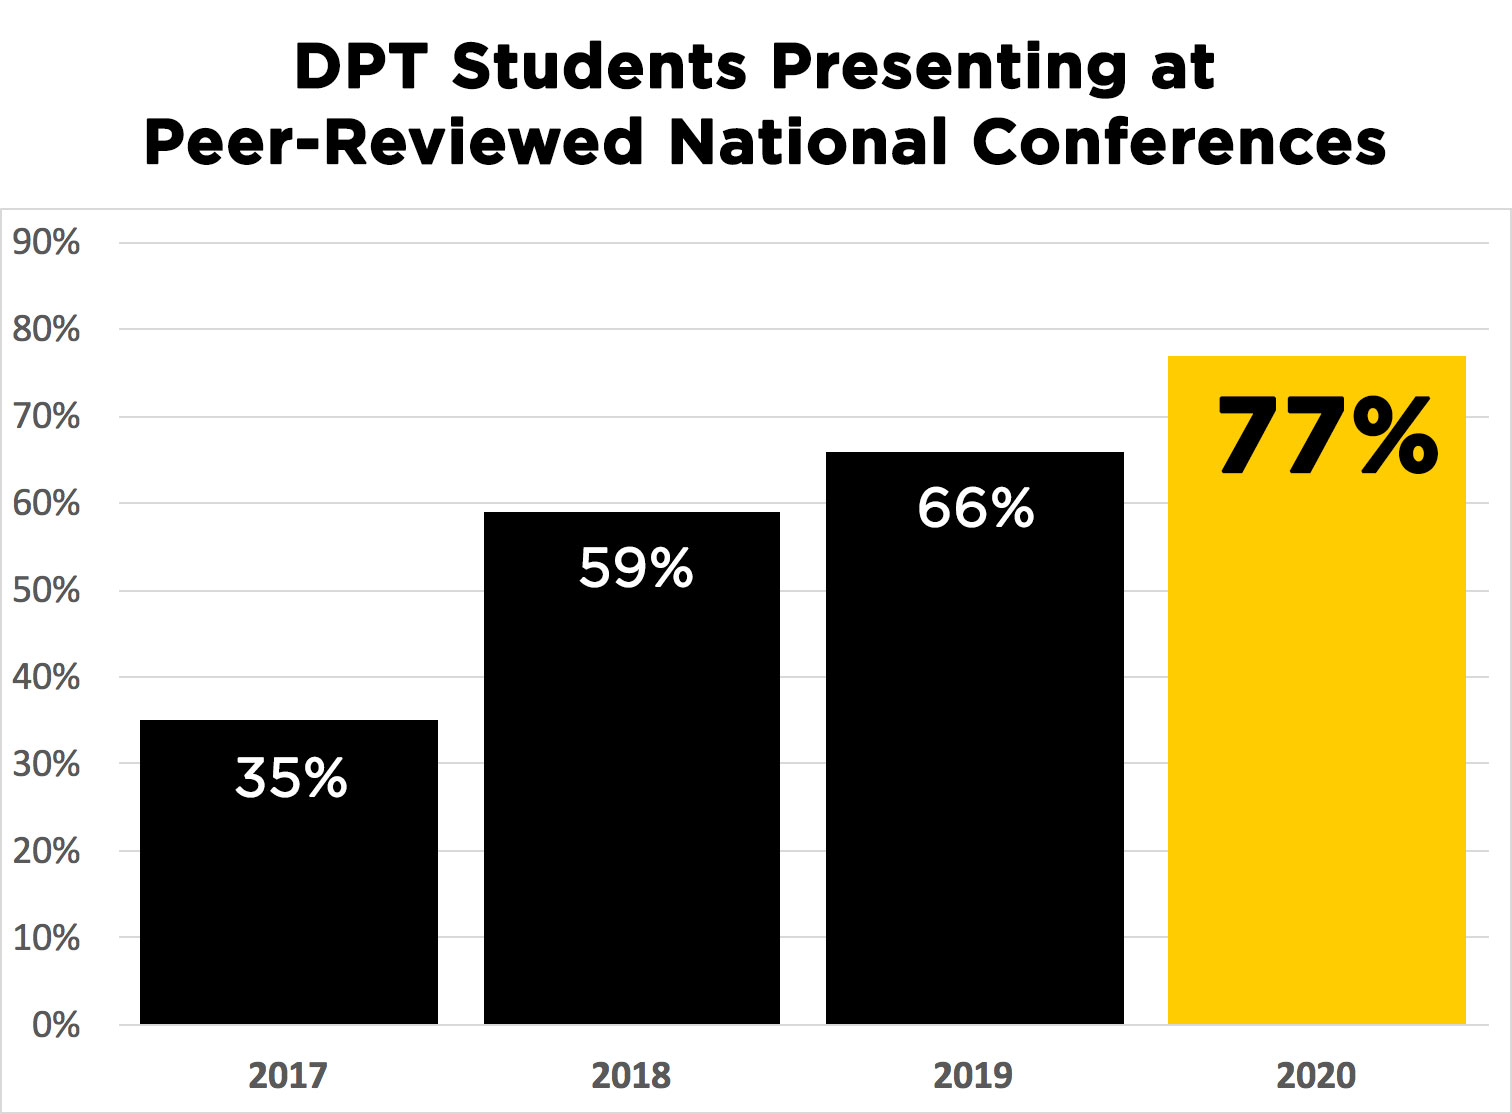 graph showing increase of DPT student presentations over the last four years